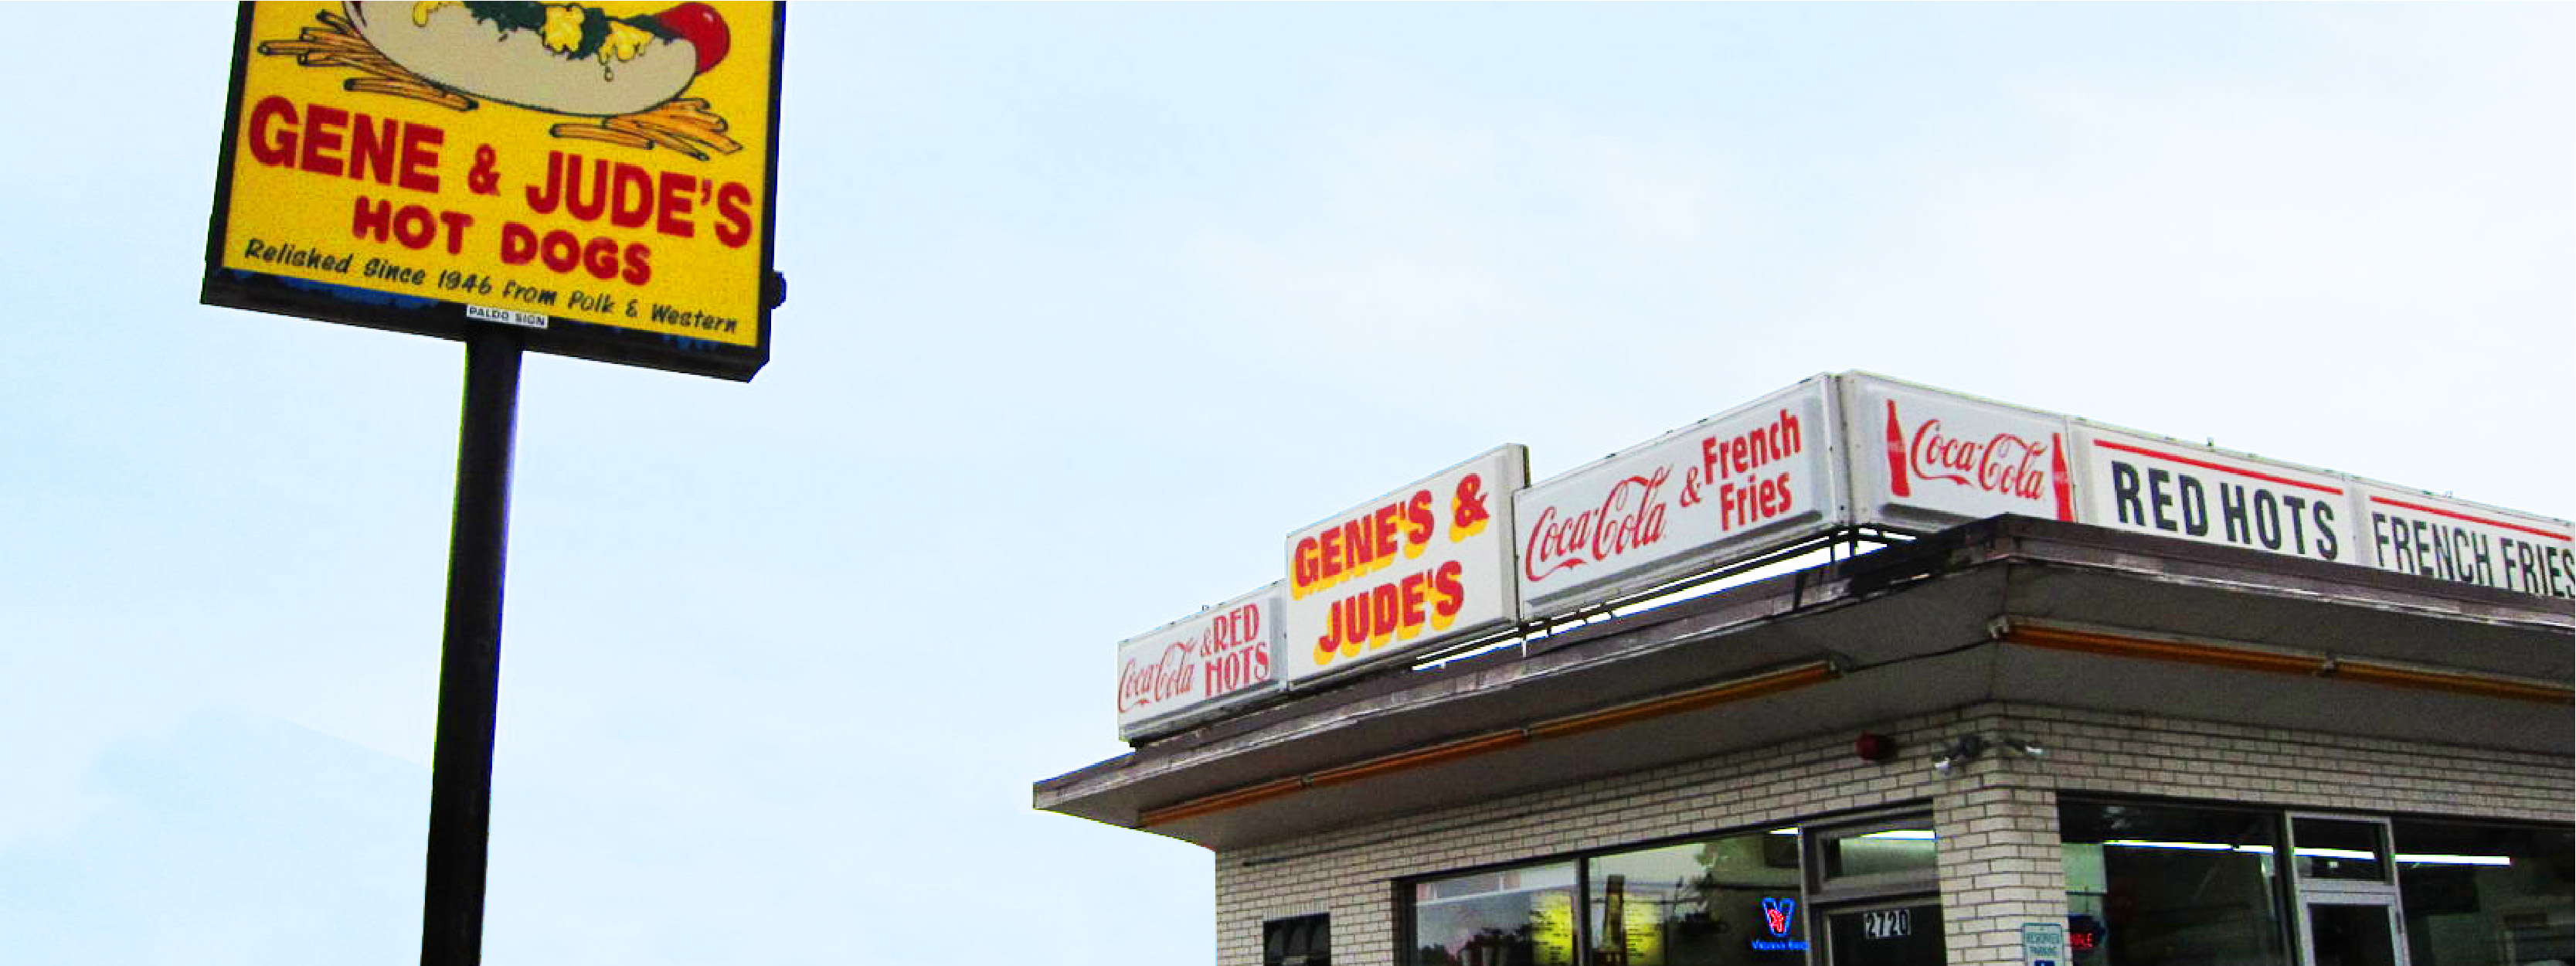 Signage at Gene & Jude's Hot Dogs